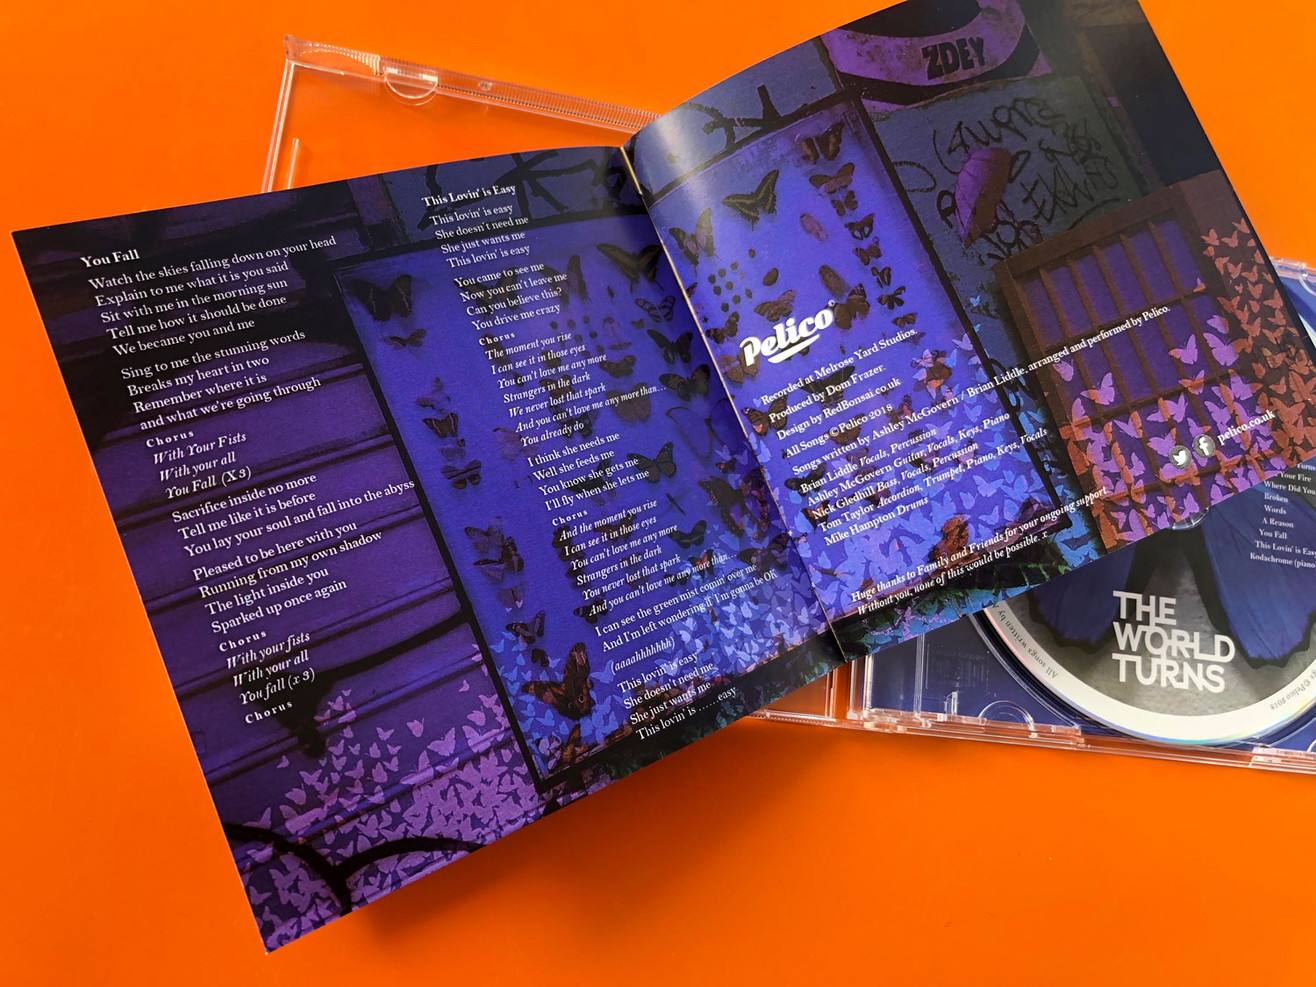 The-World-Turns-inside-booklet.jpg